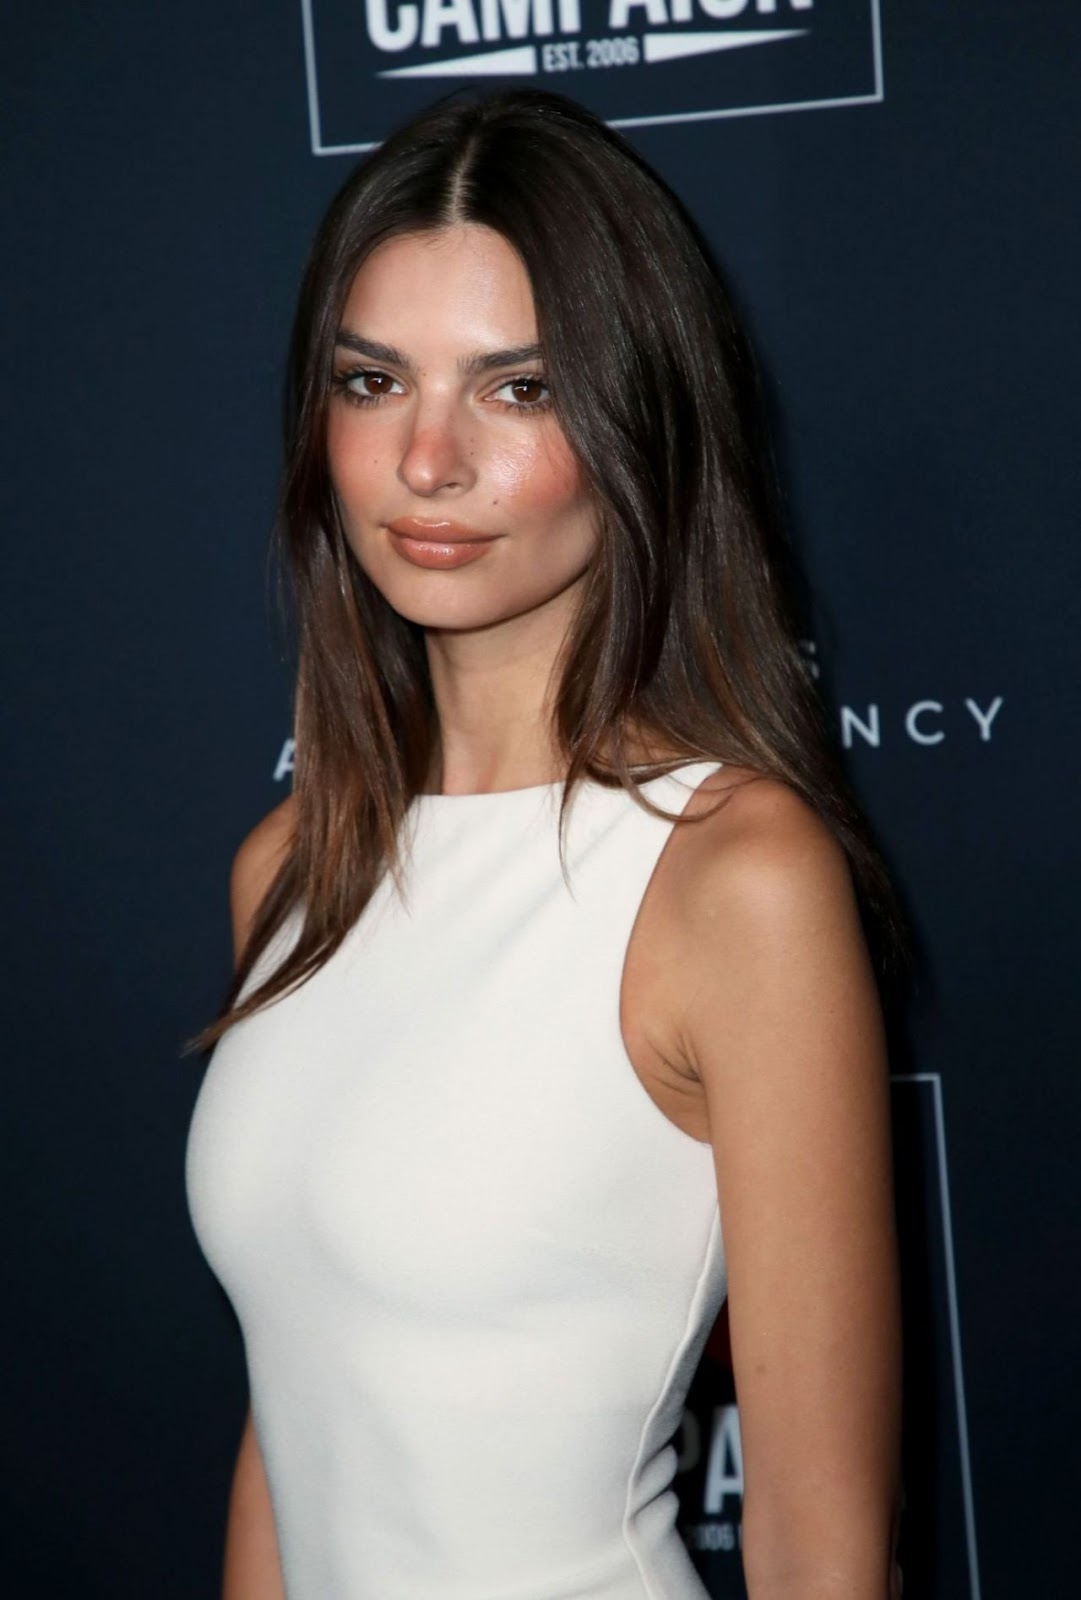 Emily Ratajkowski – GO Campaign's 13th Annual Gala at NeueHouse in Hollywood